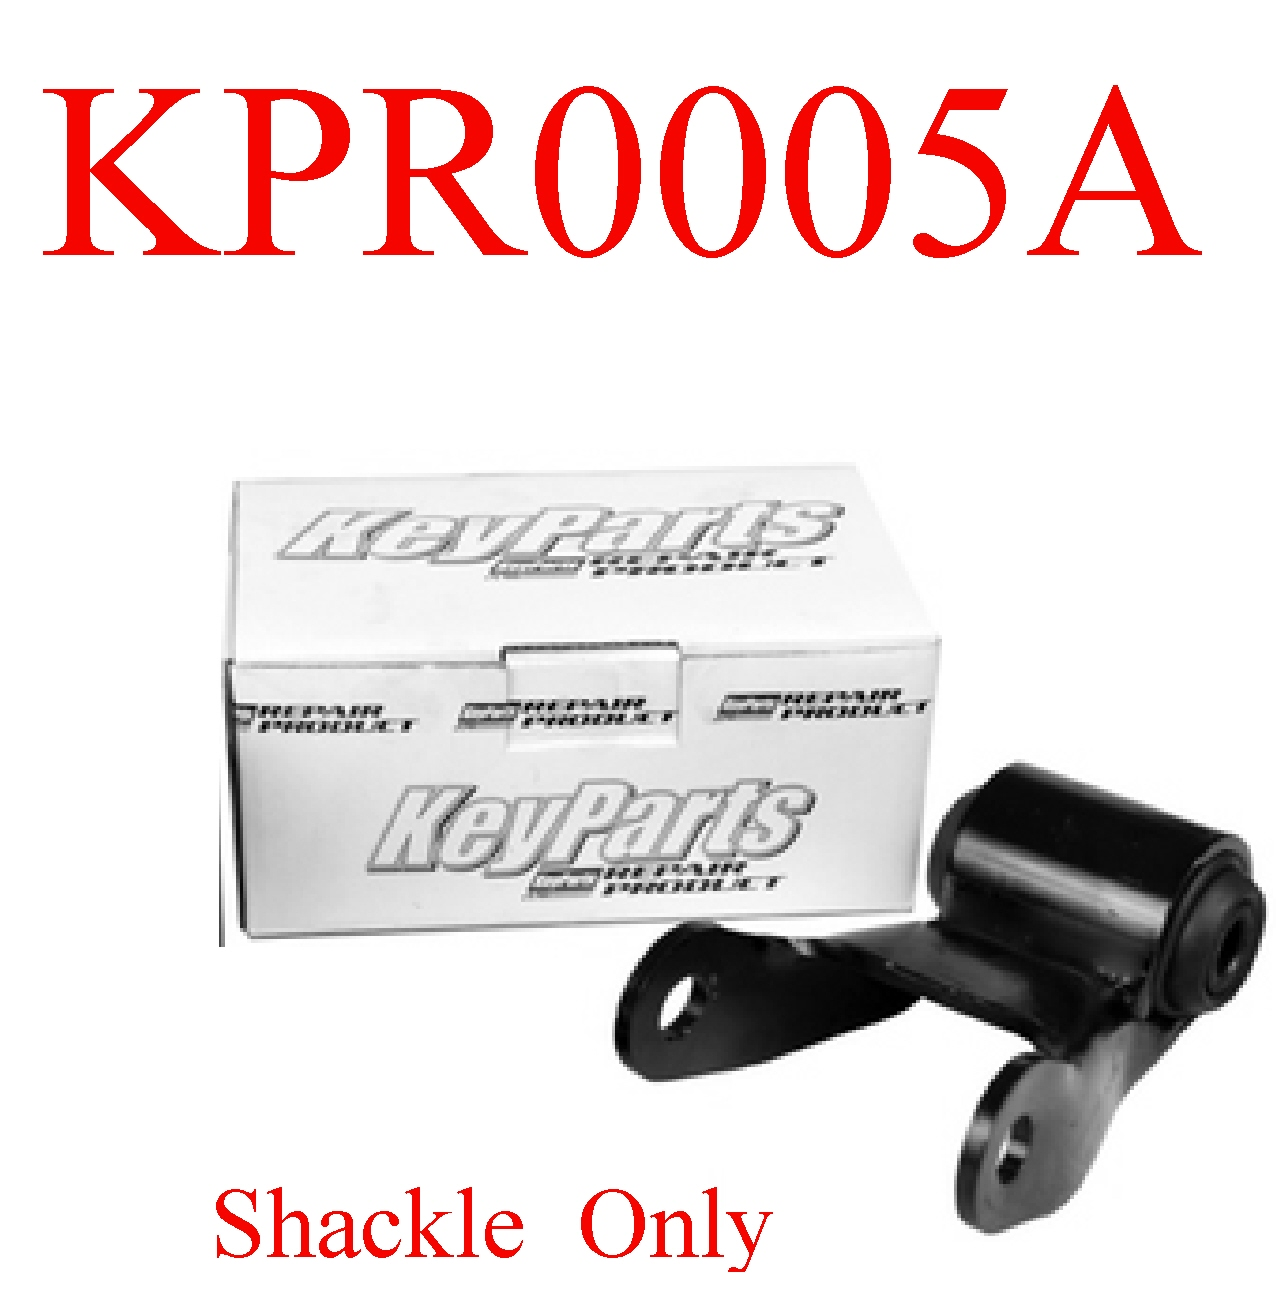 KPR0005A 88 06 Chevy Rear Spring Shackle Assembly, Suspension